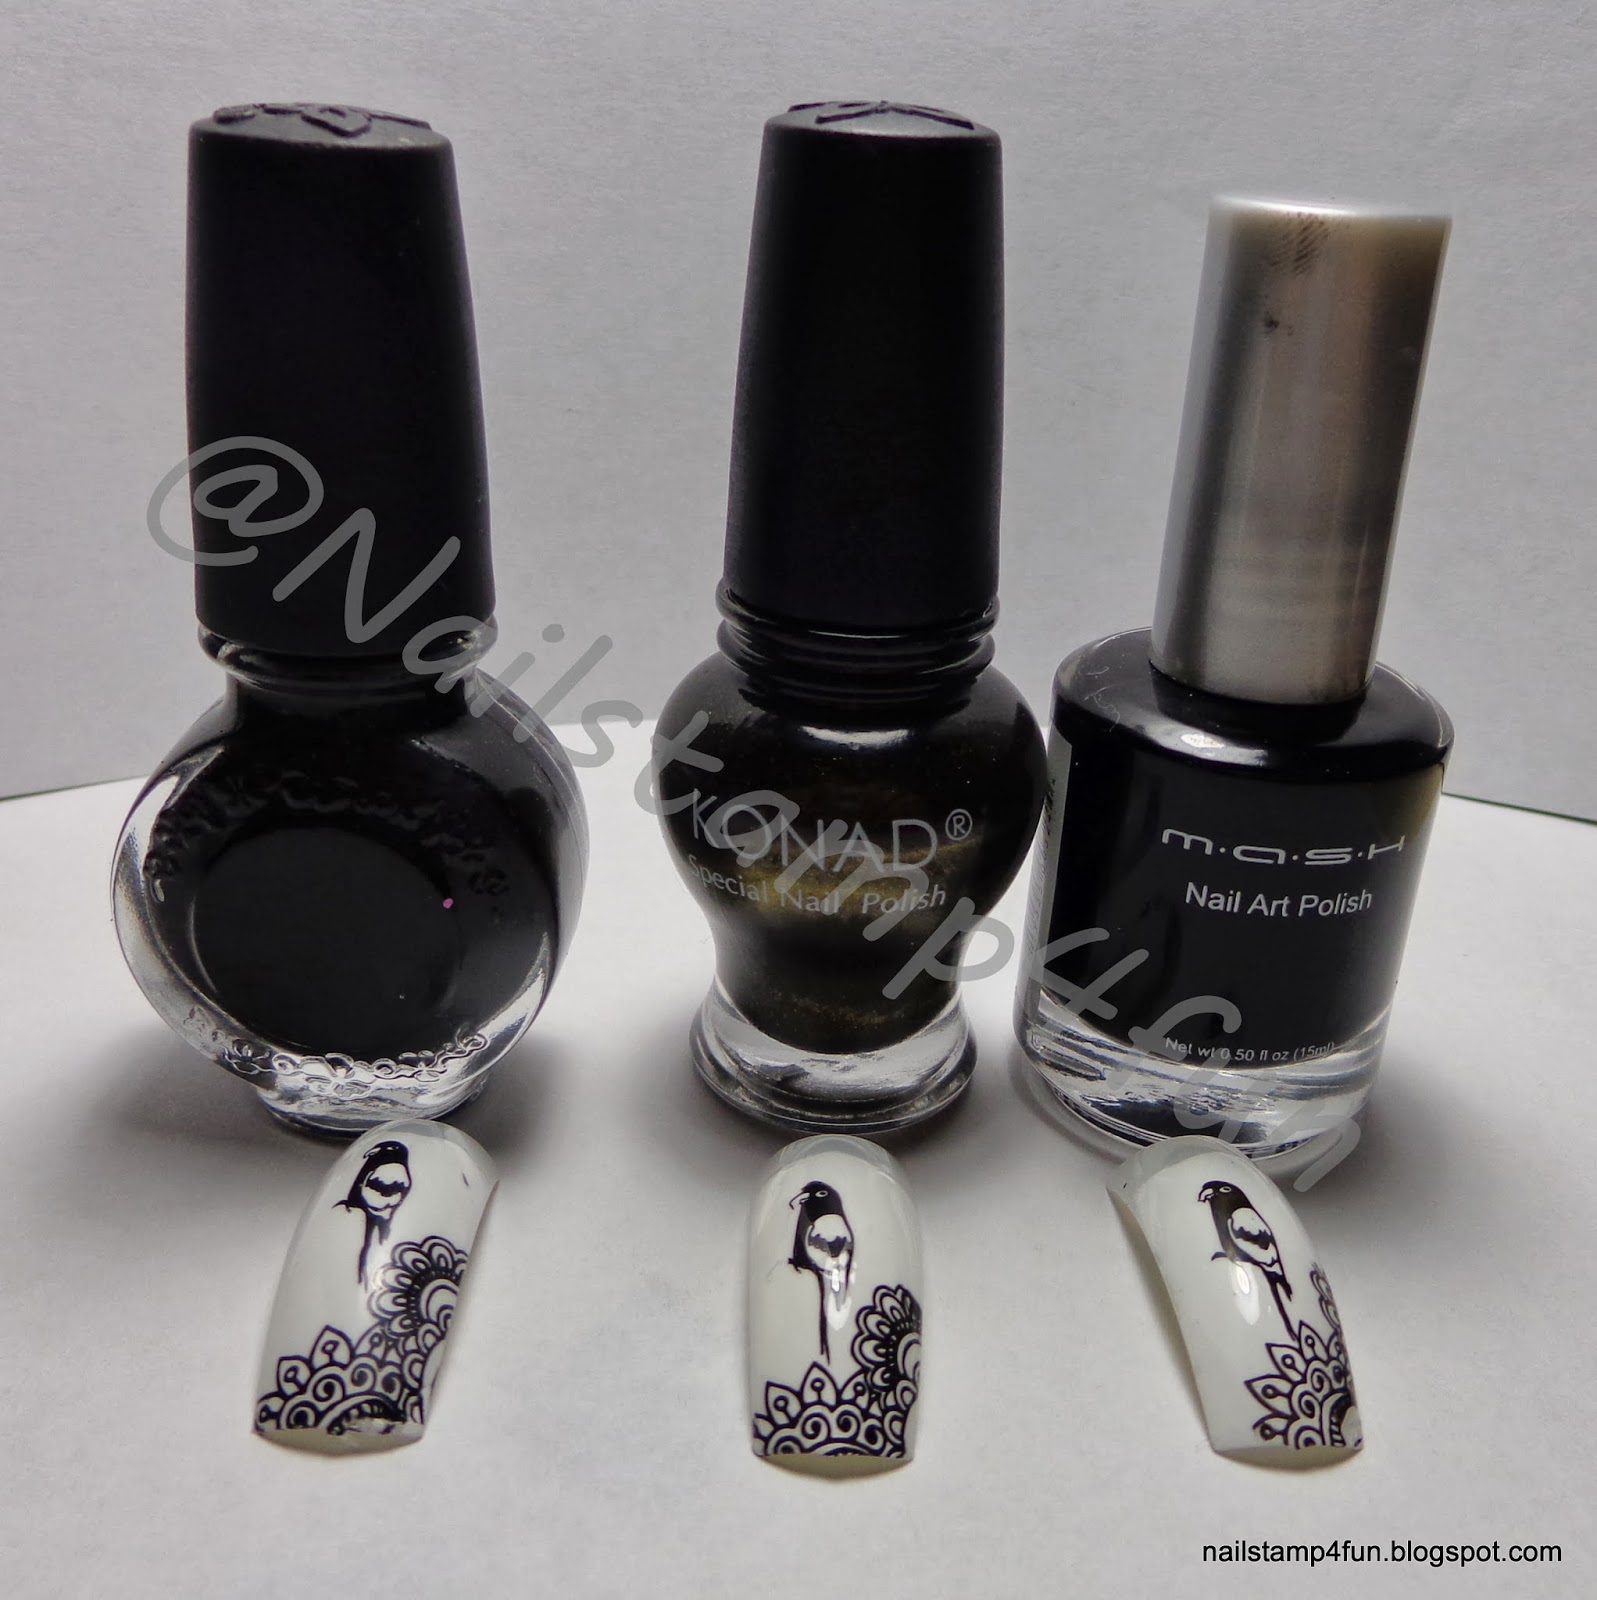 Nail Stamp 4 Fun: Swatches of Black & White Nail Stamping Polishes